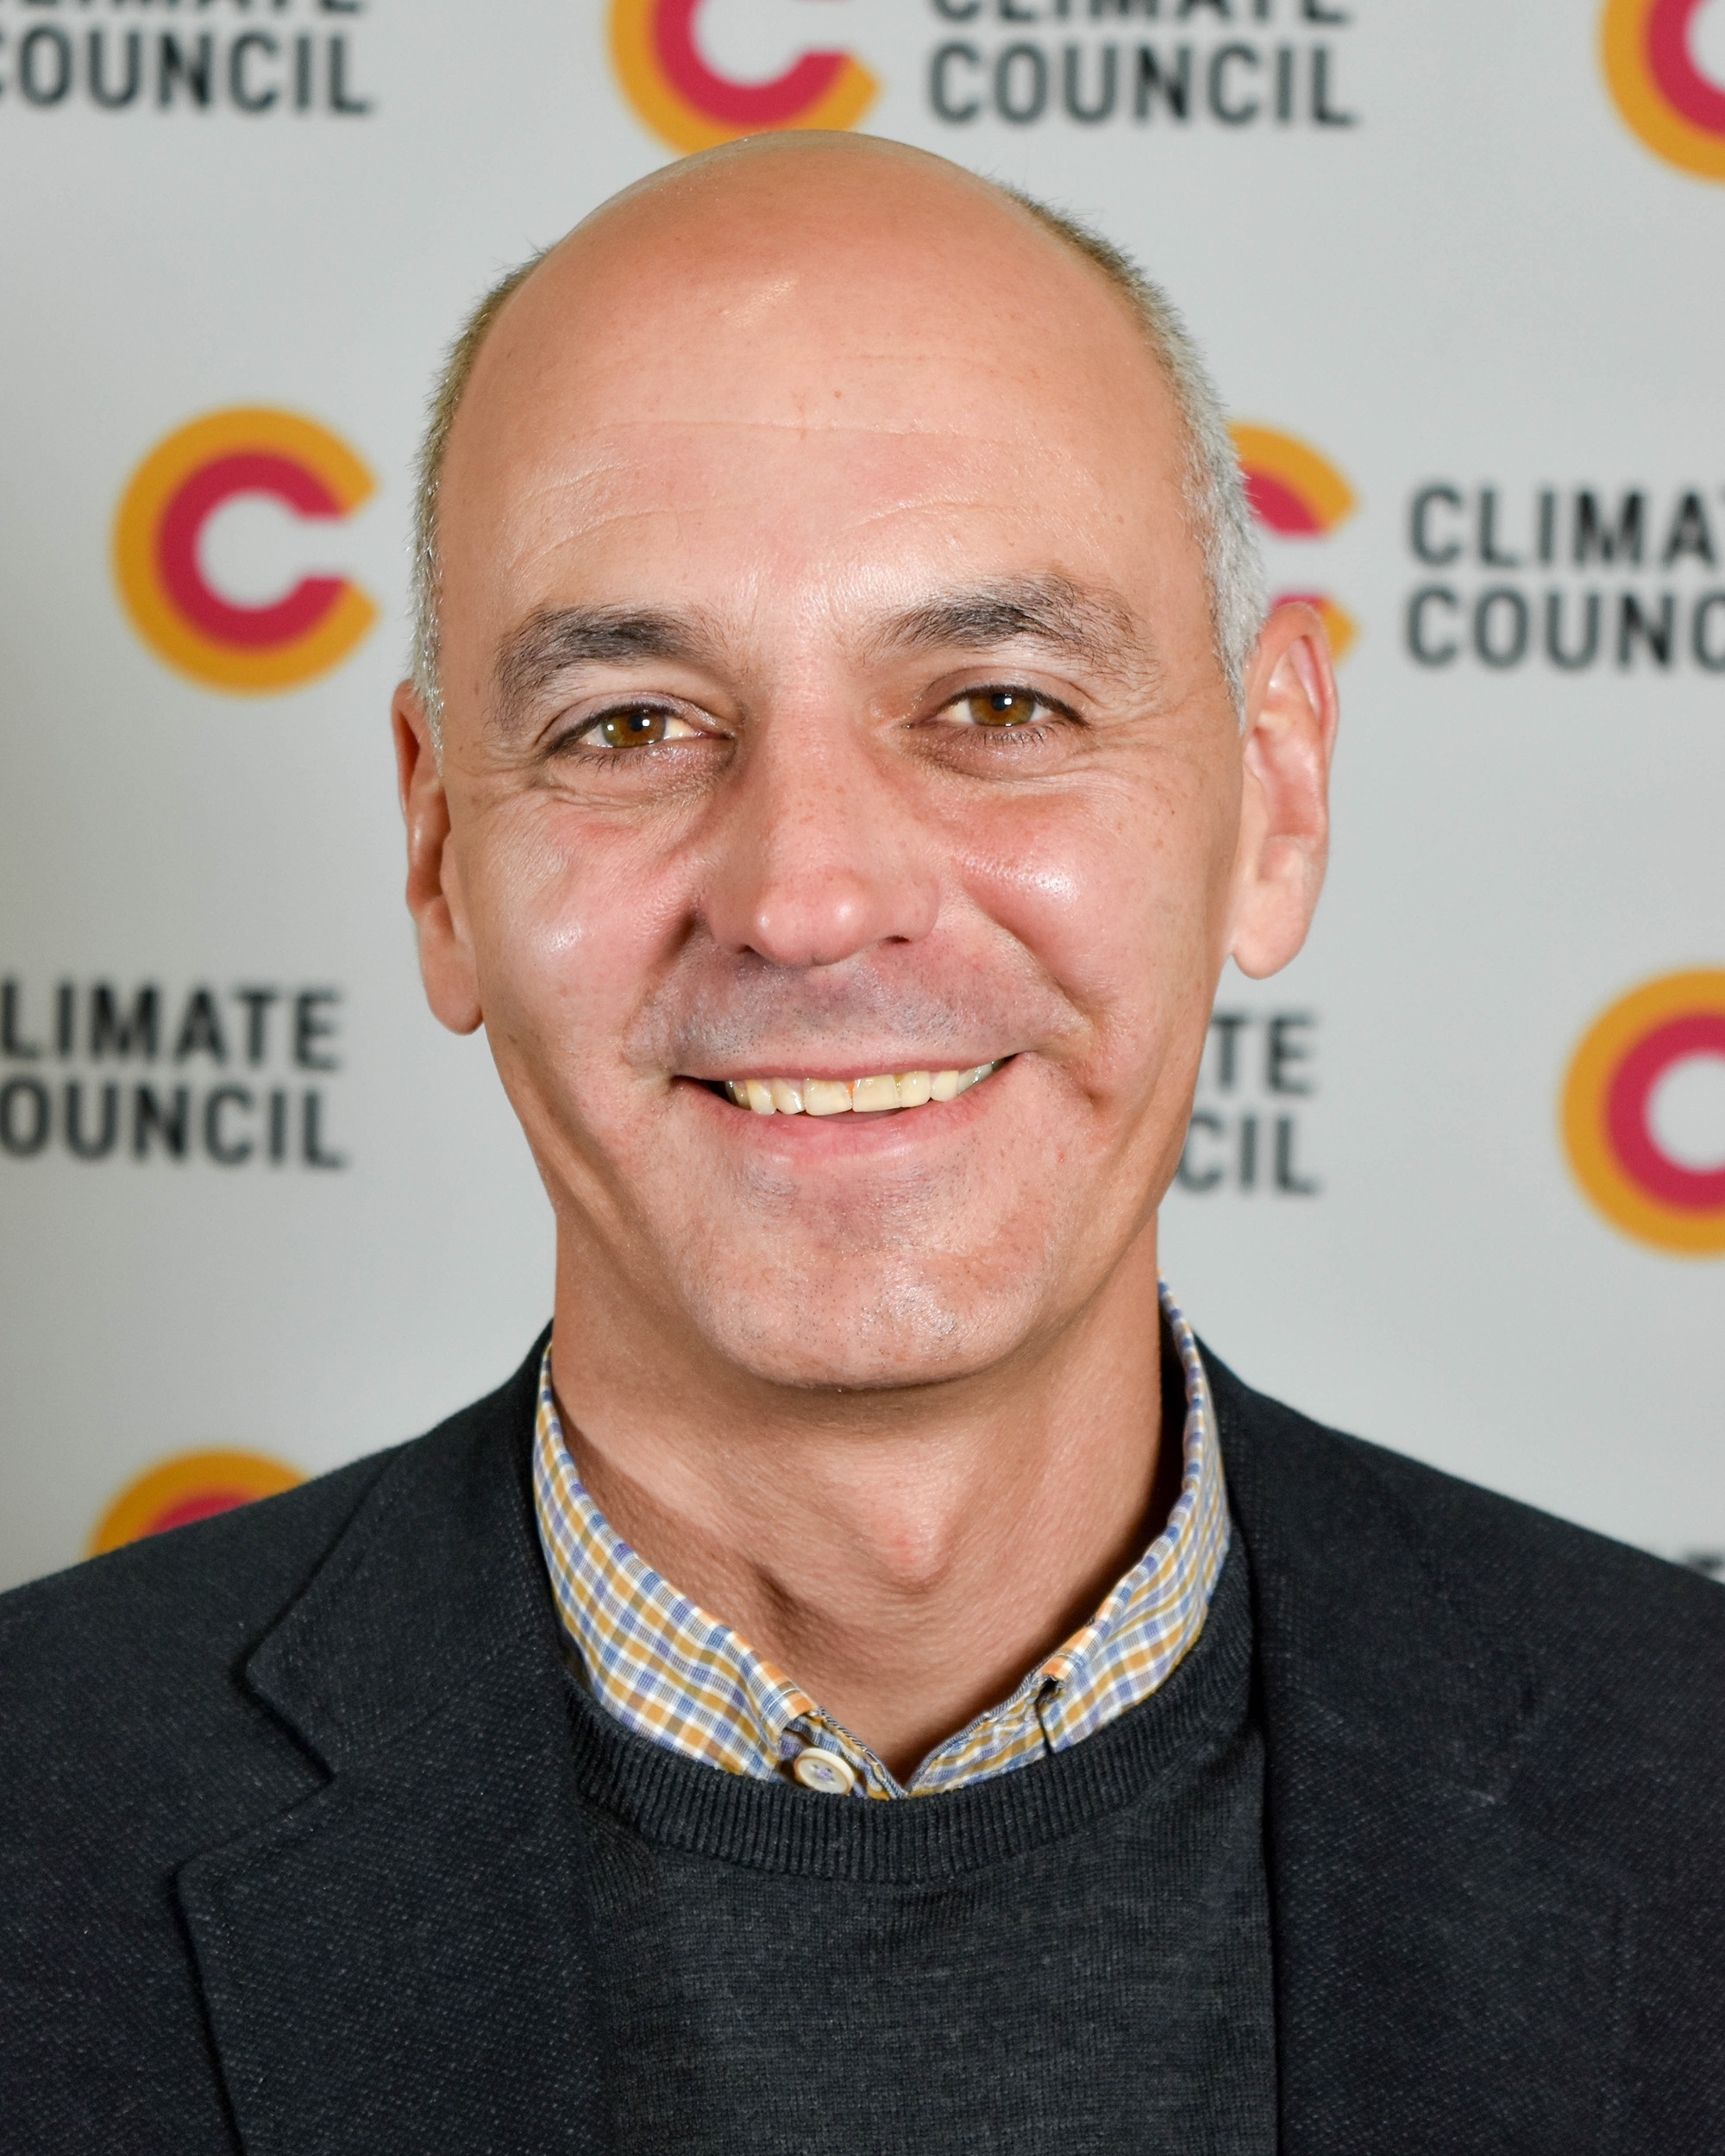 Martin Rice - Acting CEO & Head of Research, The Climate Council